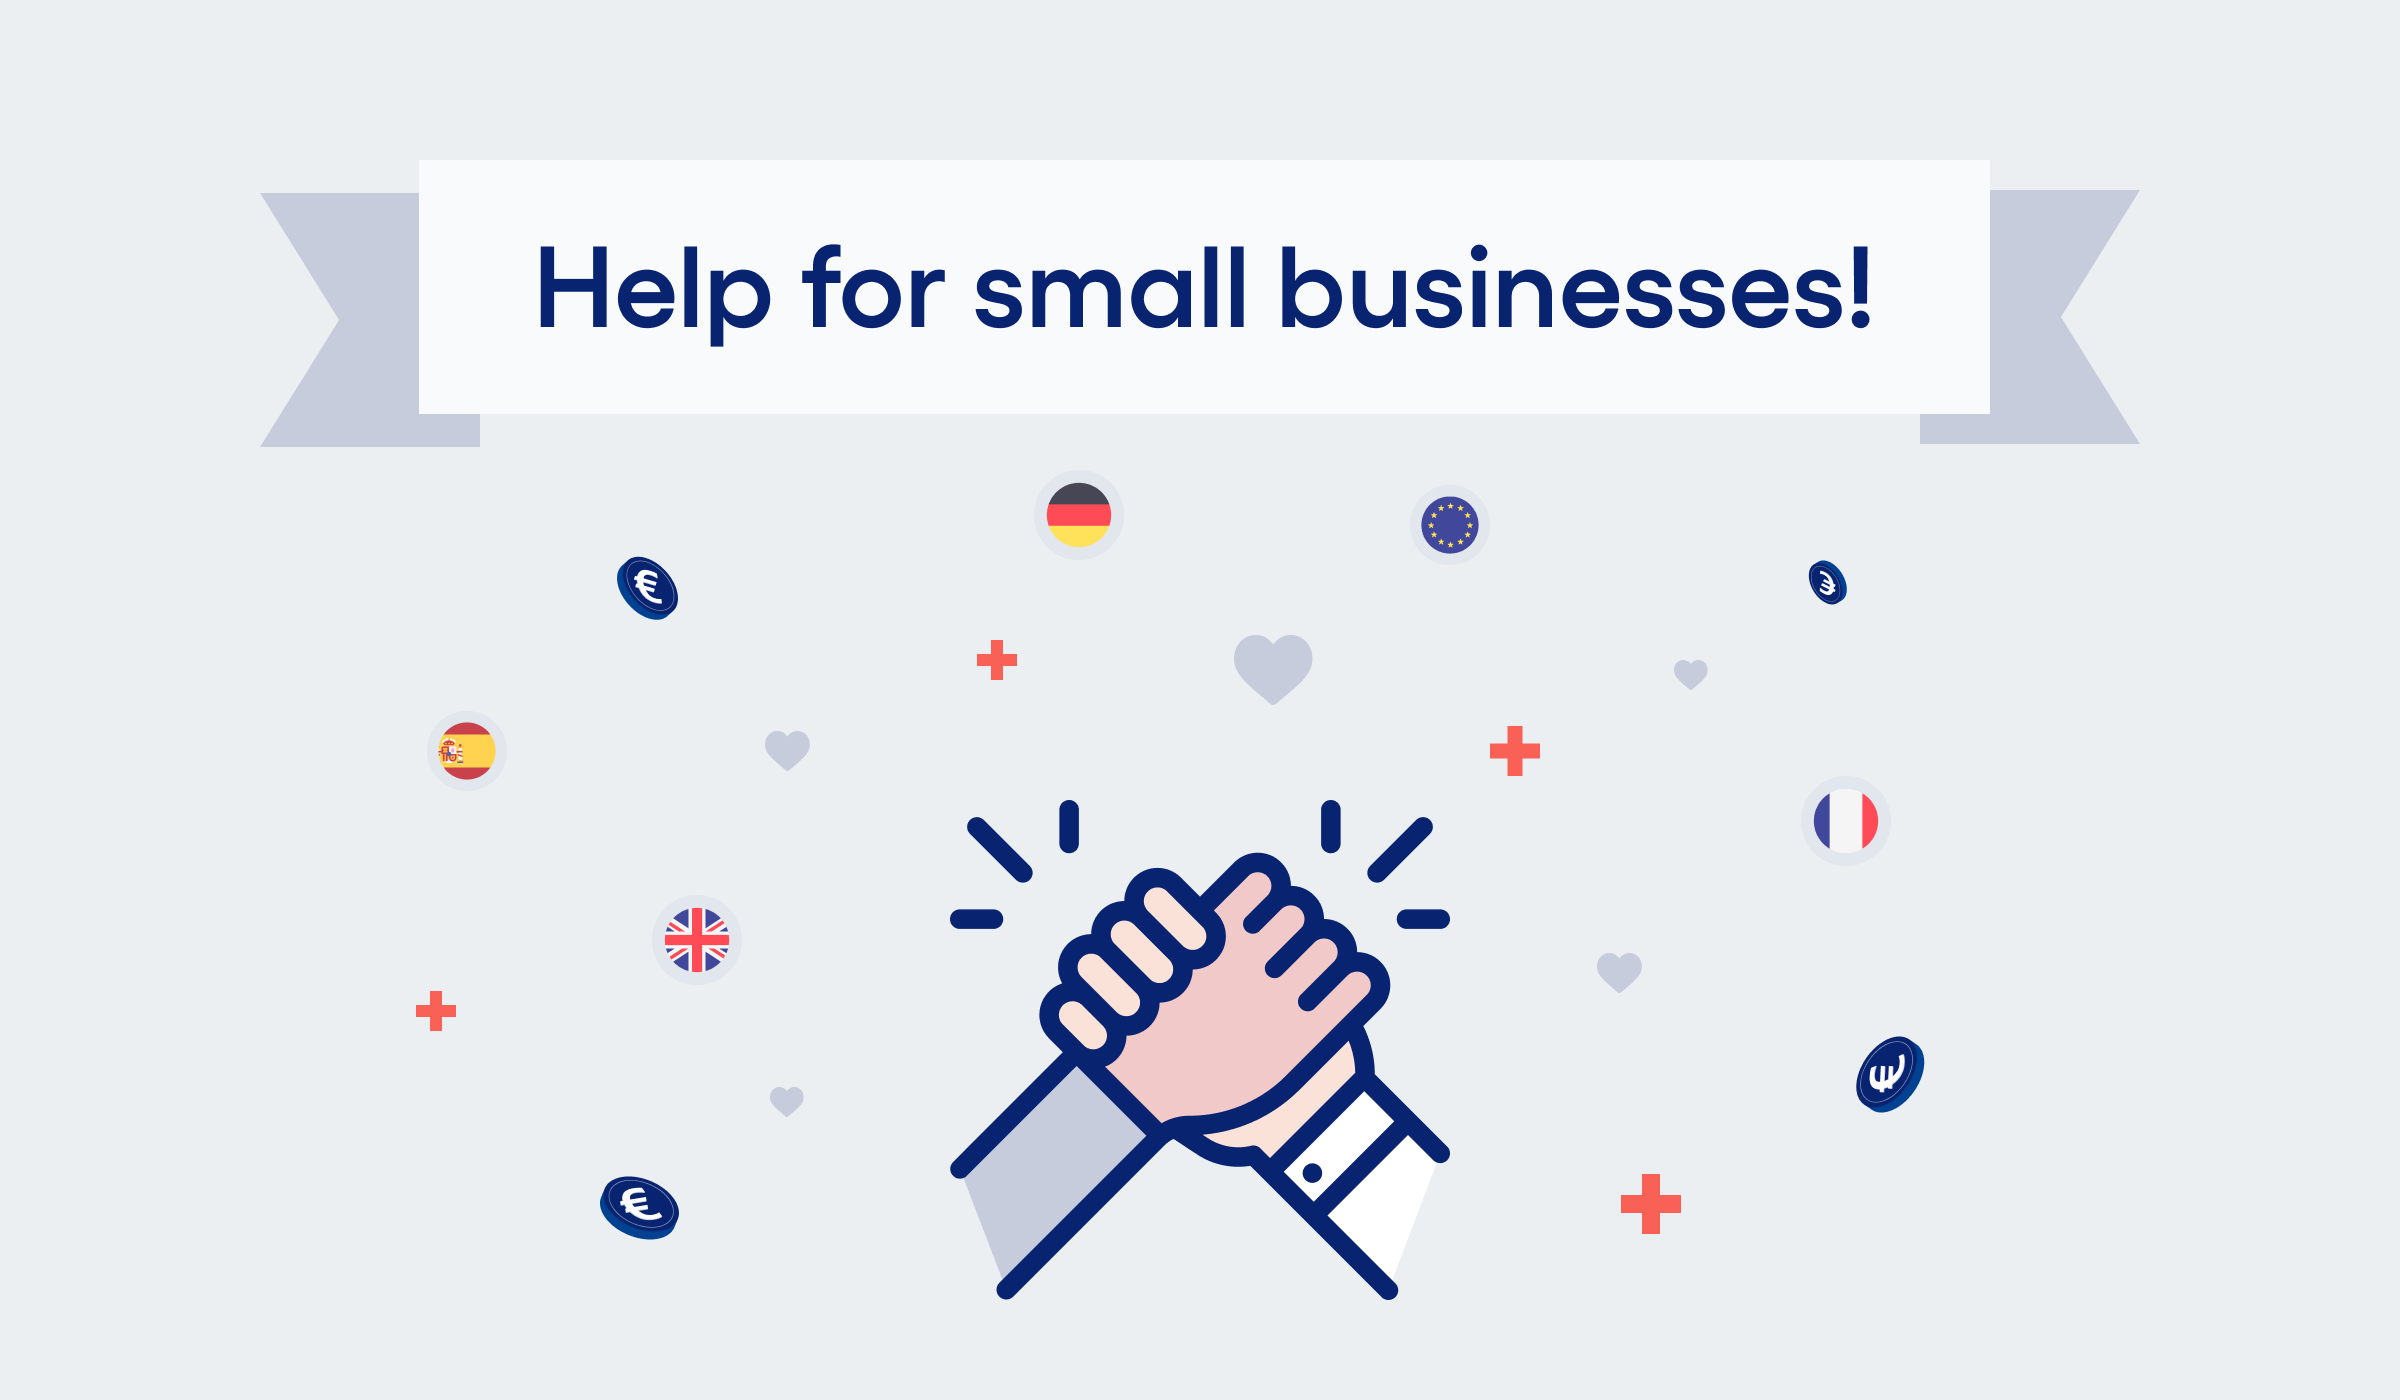 COVID-19 help for small businesses in four EU countries